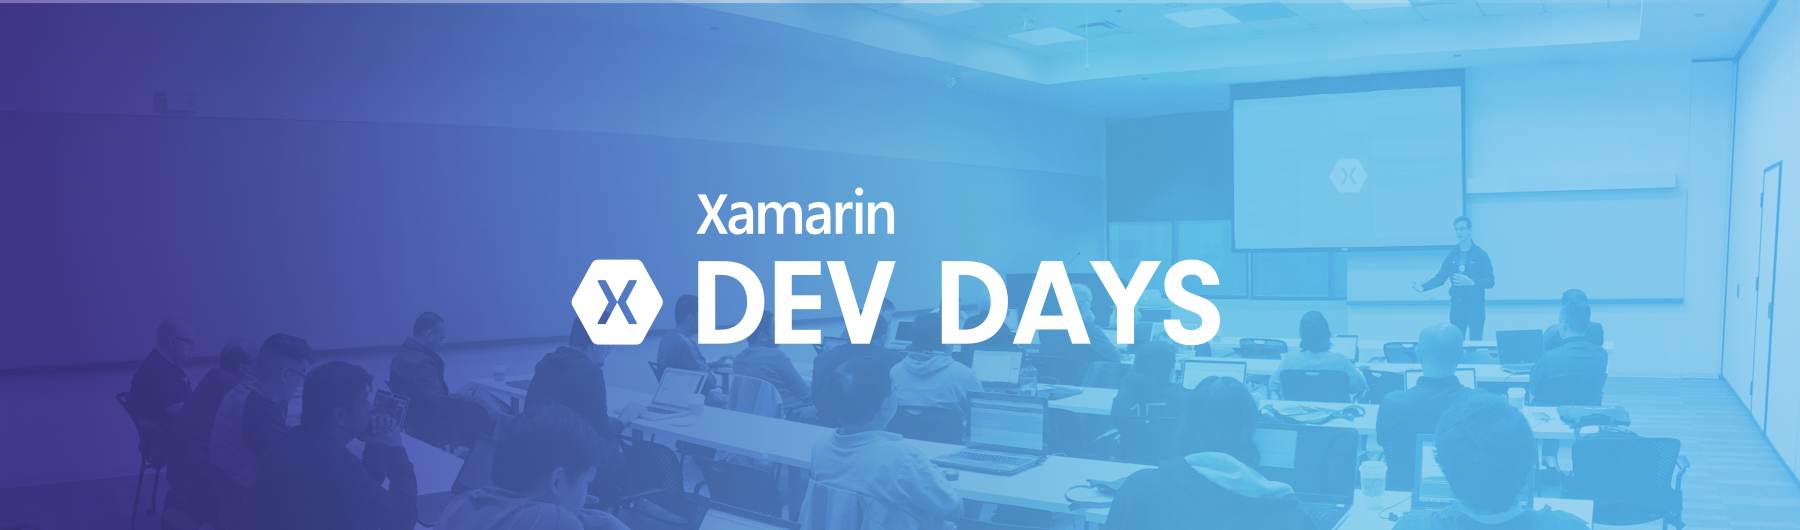 Xamarin Dev Days - Edegem